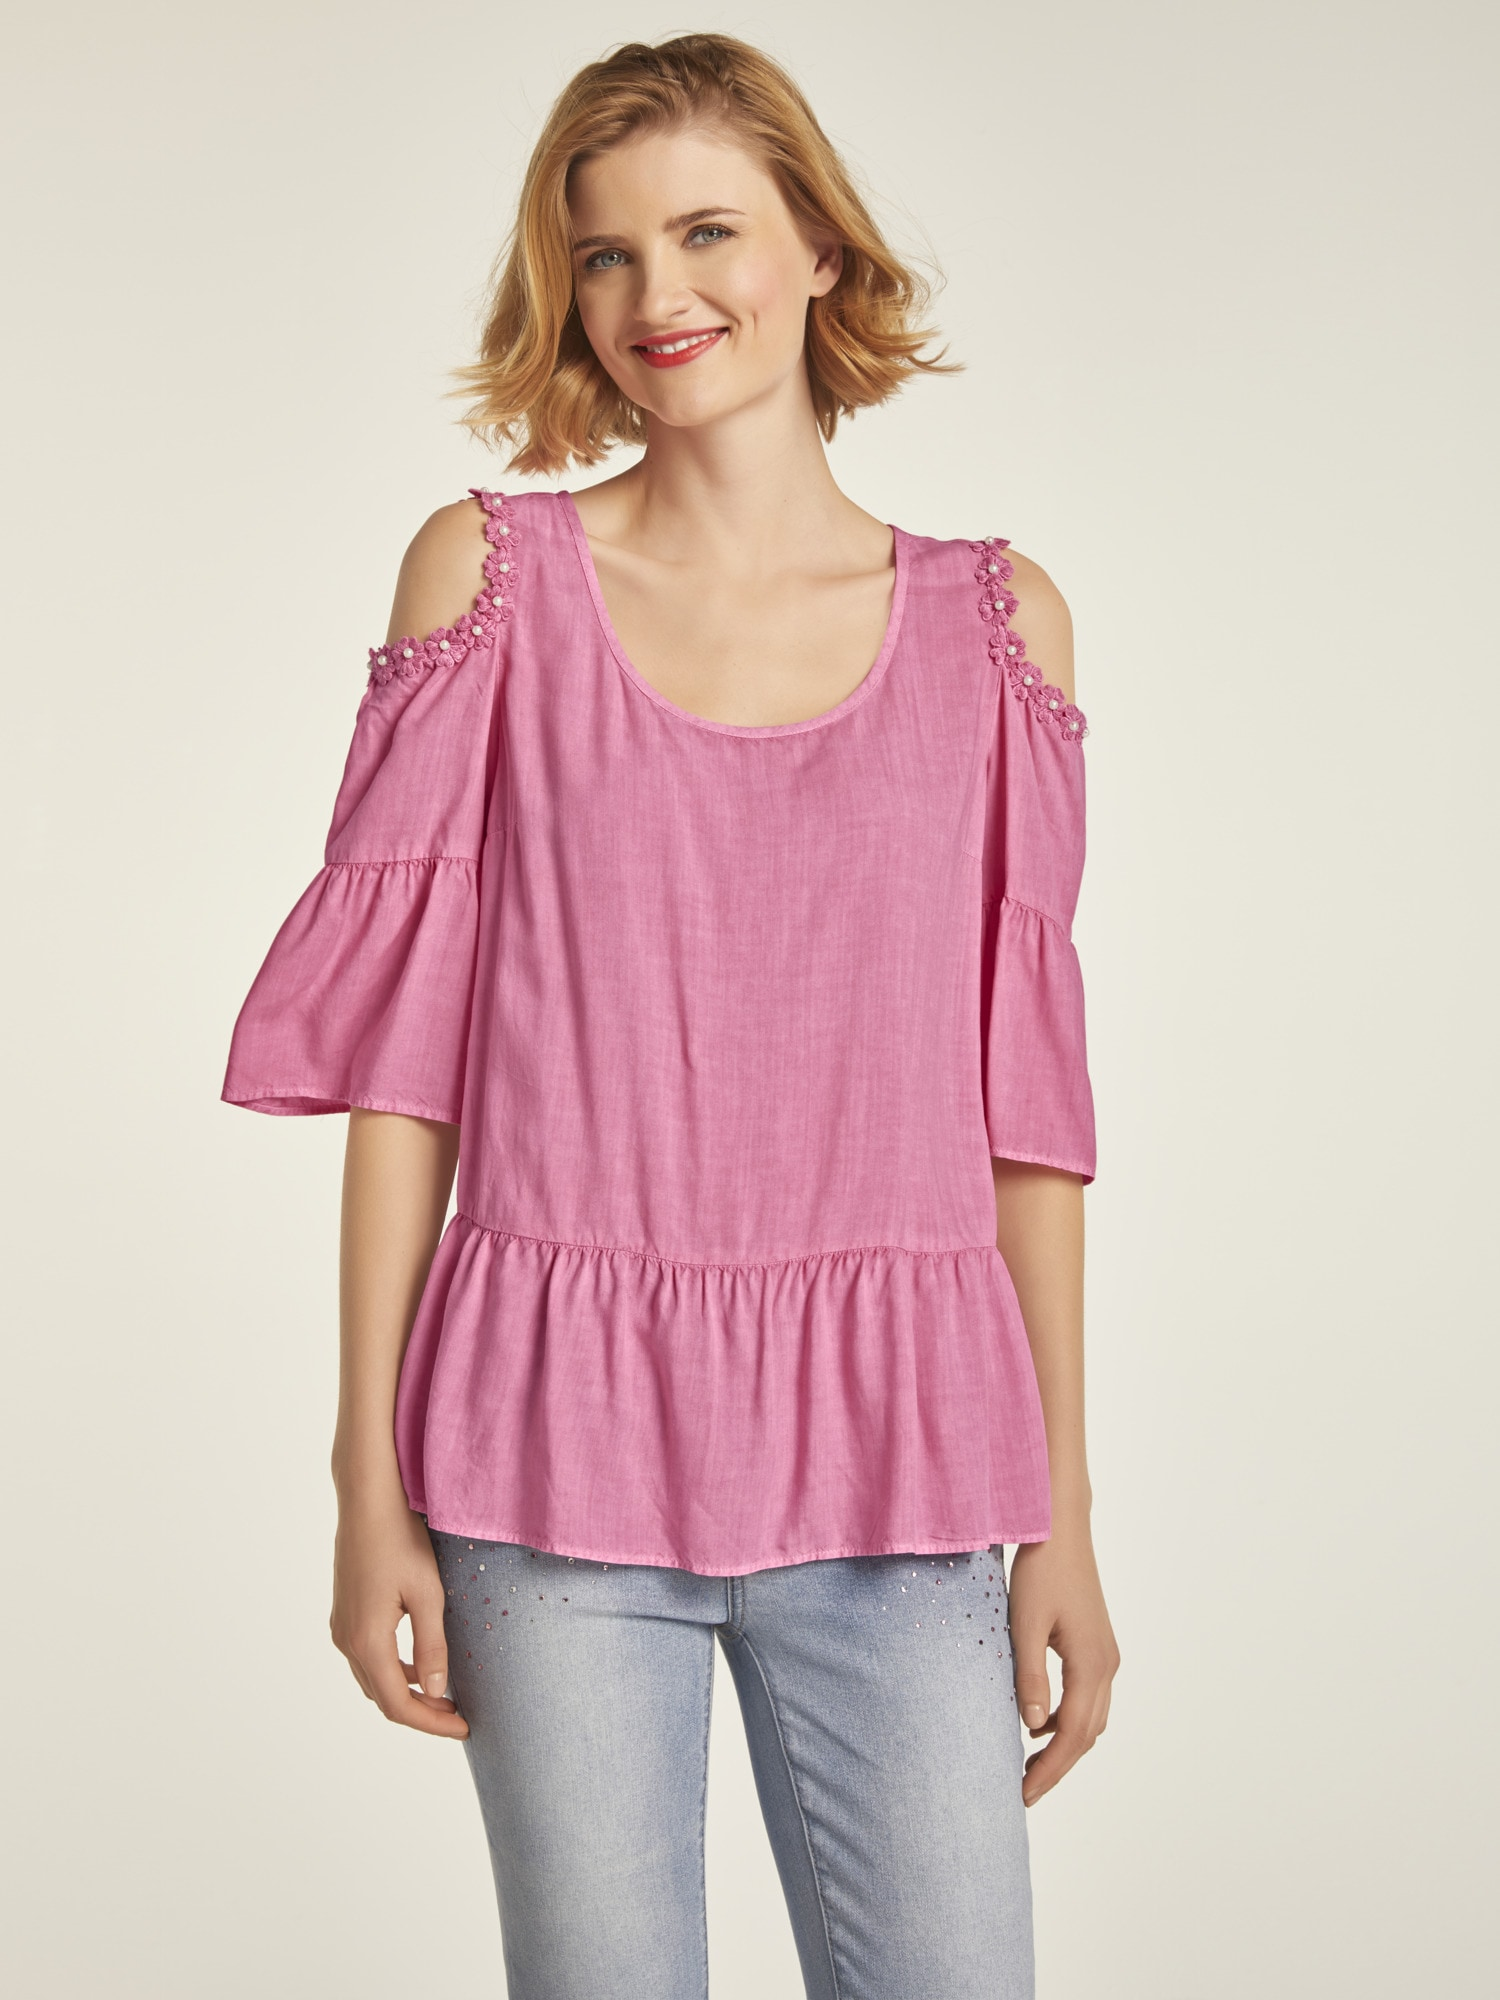 heine CASUAL Bluse mit dekorativen Cut-Outs